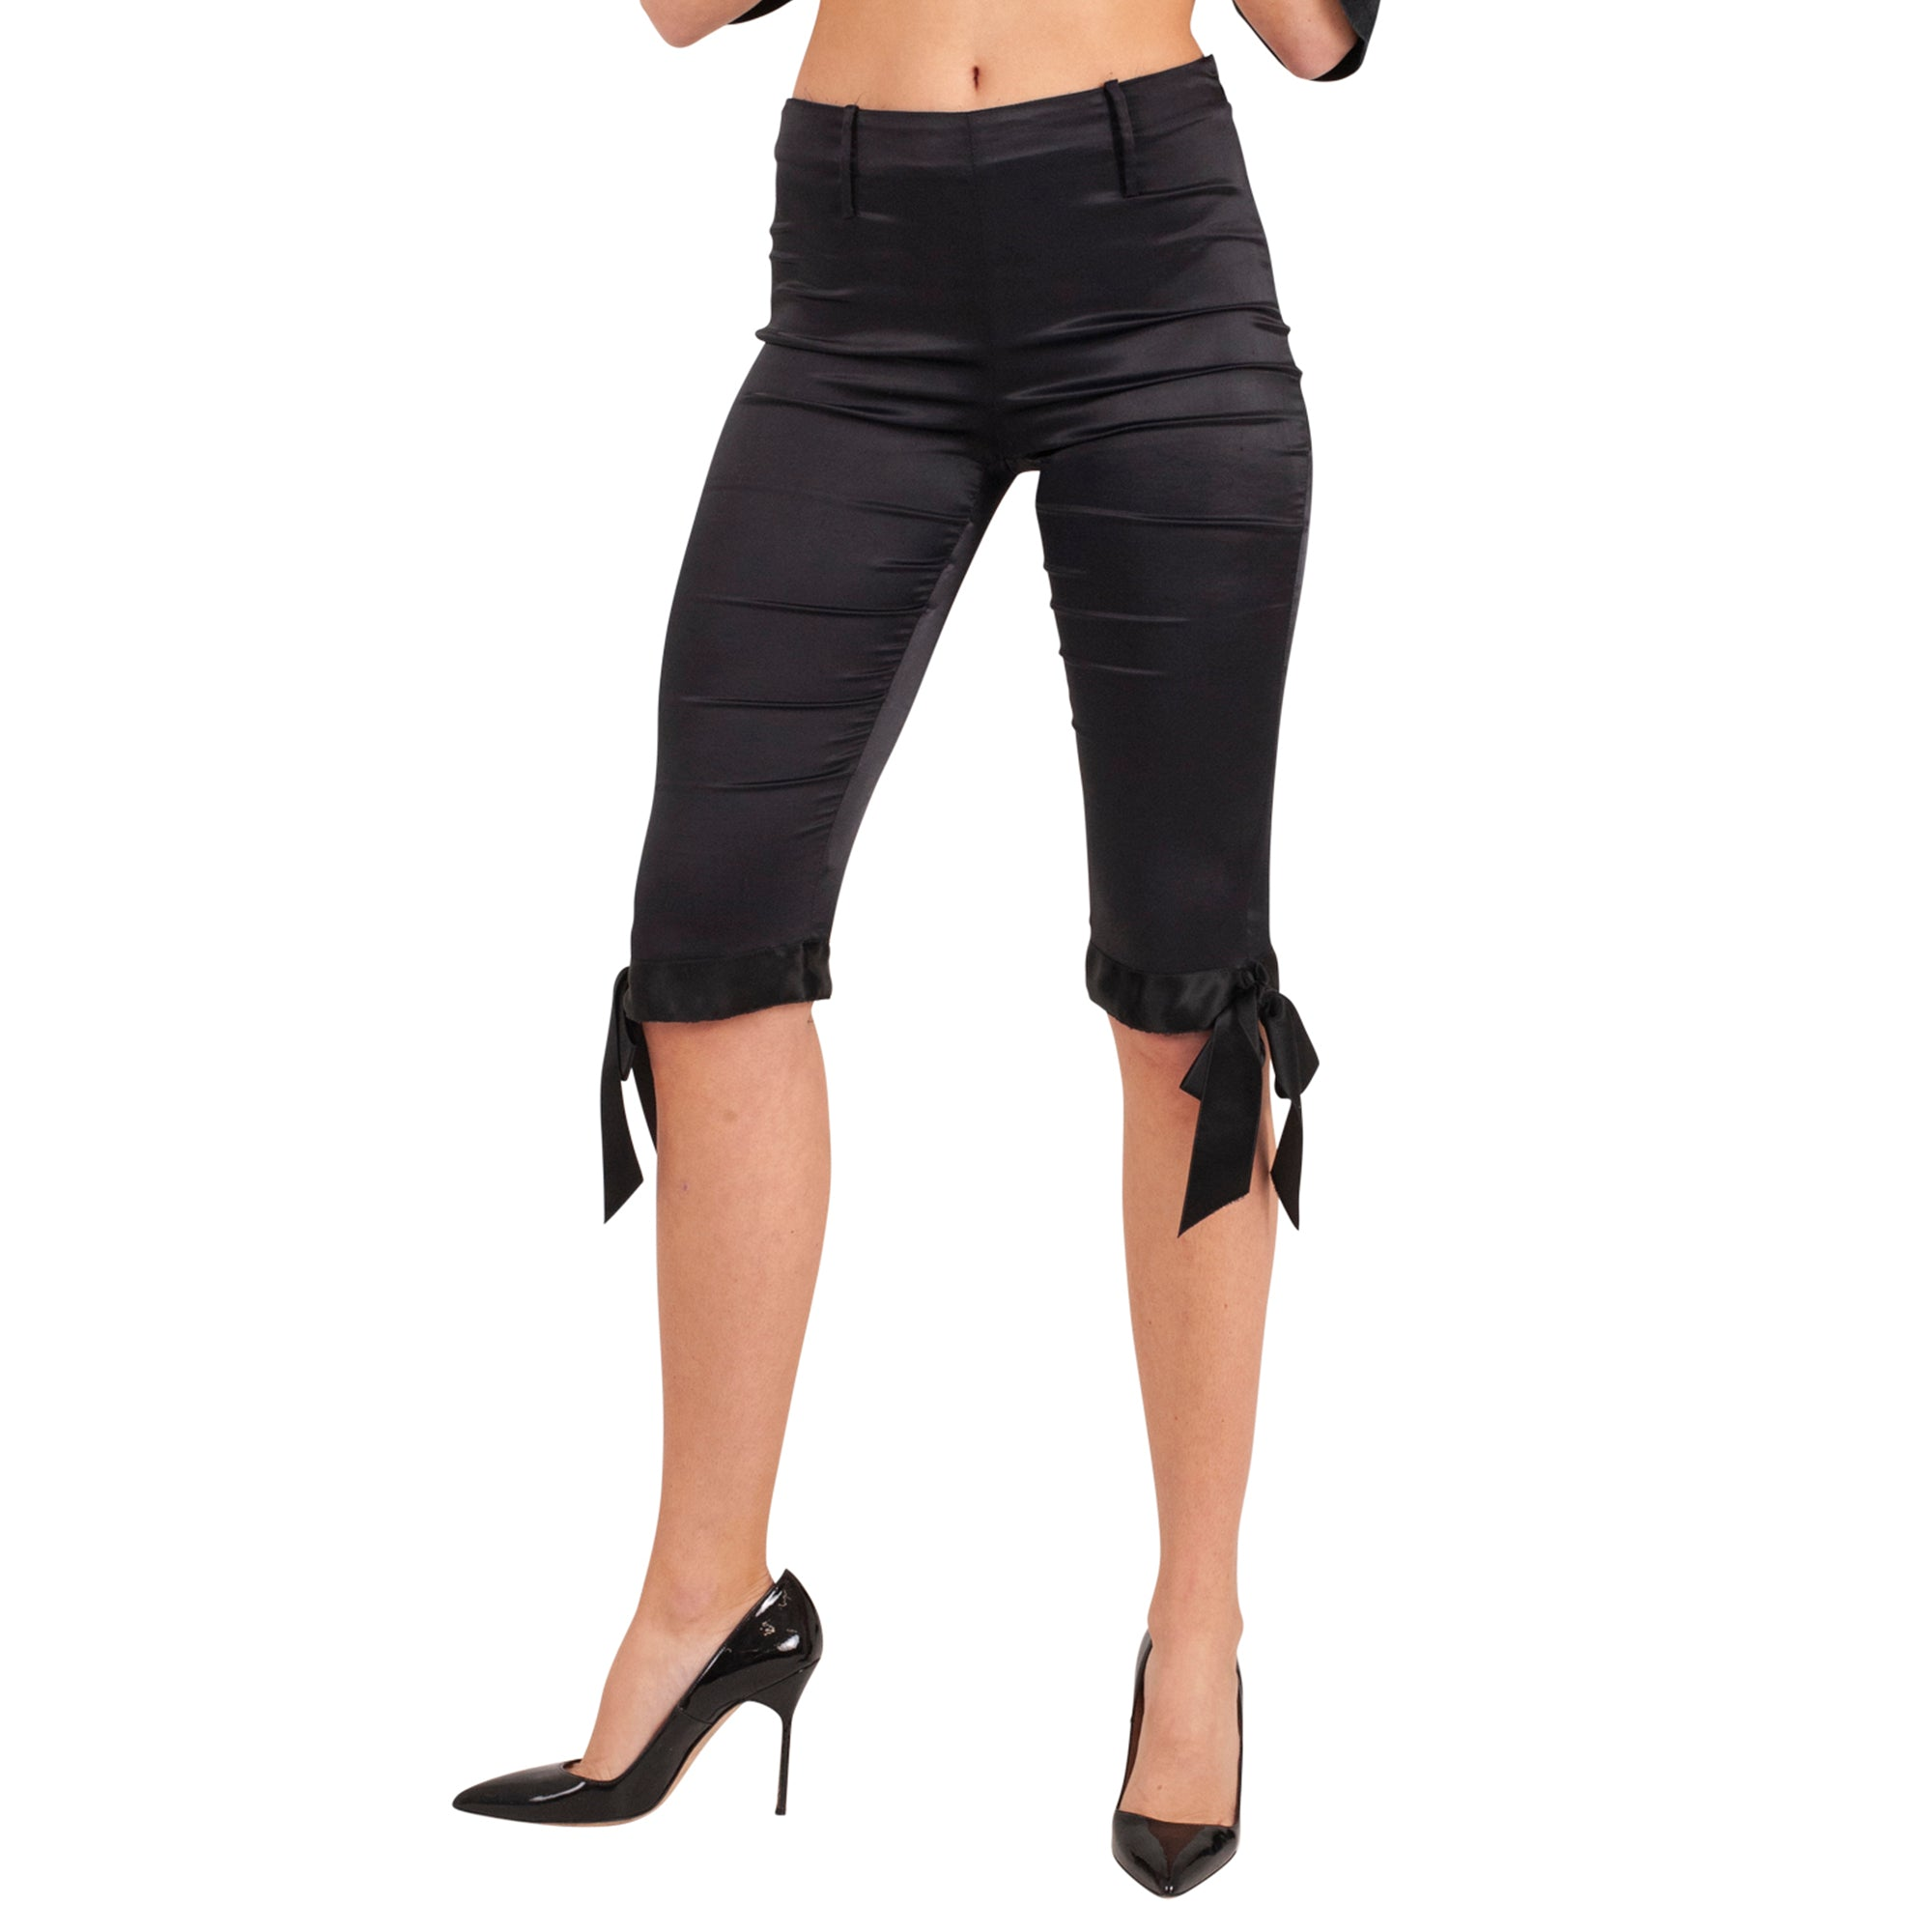 Dolce and Gabbana Capris Bow Trousers (Black) UK 6